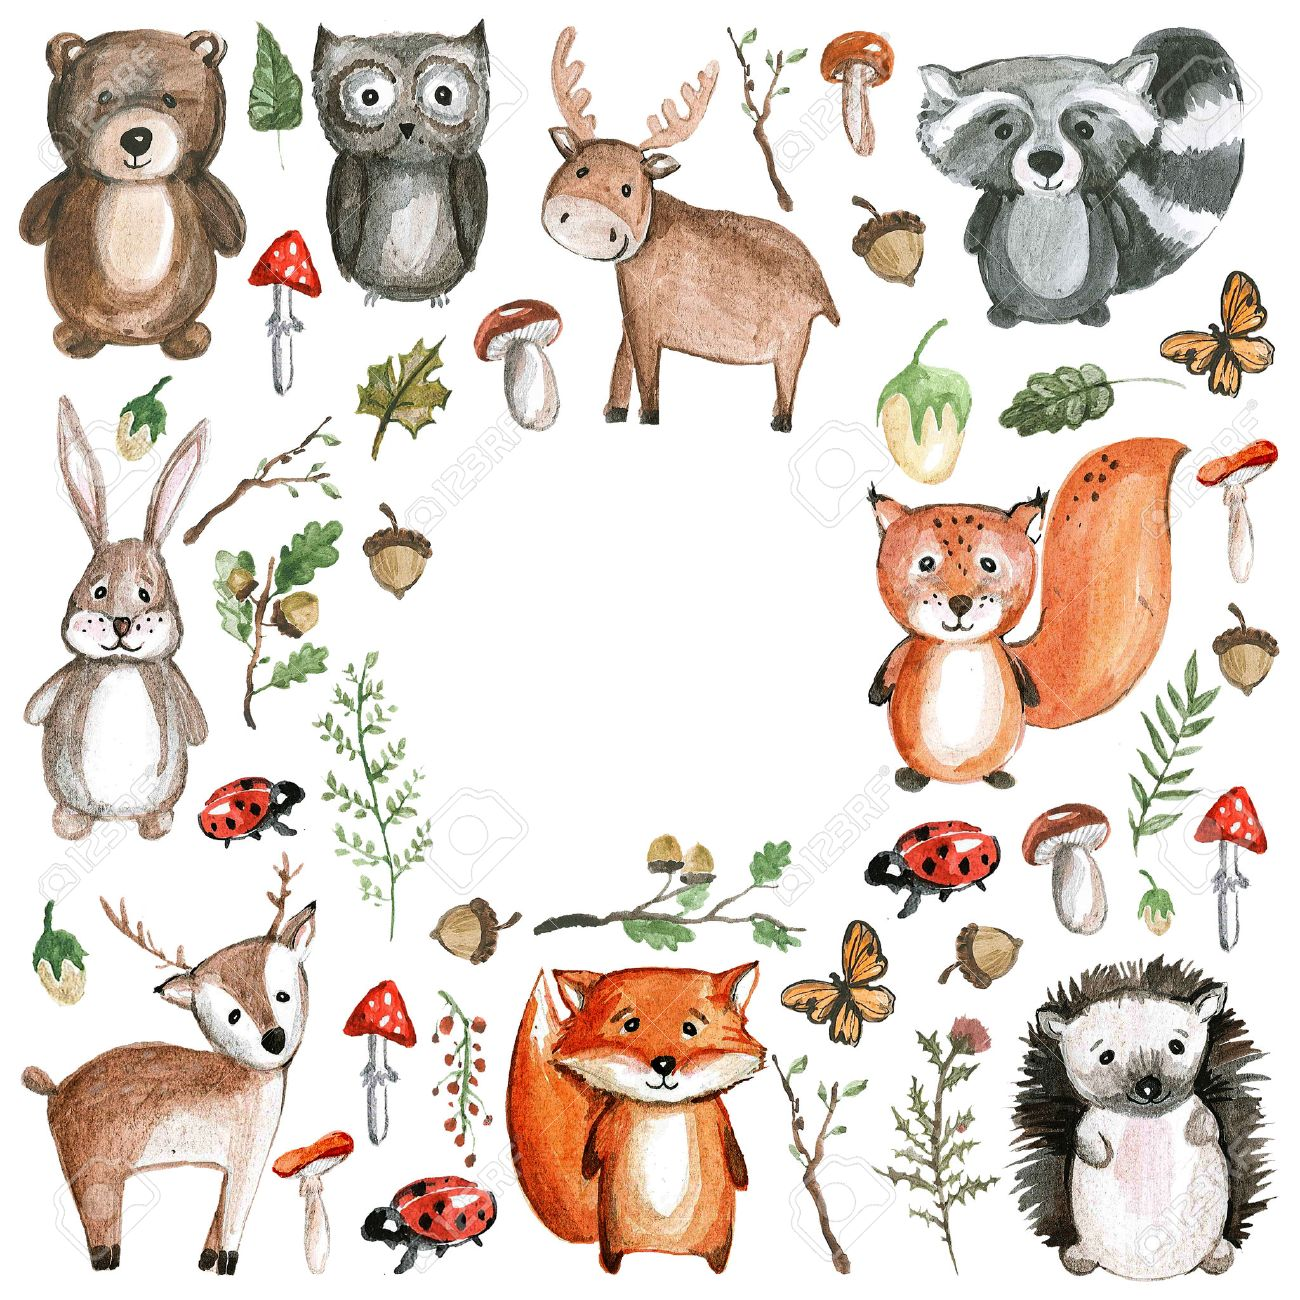 Free Woodland Animal Clipart.